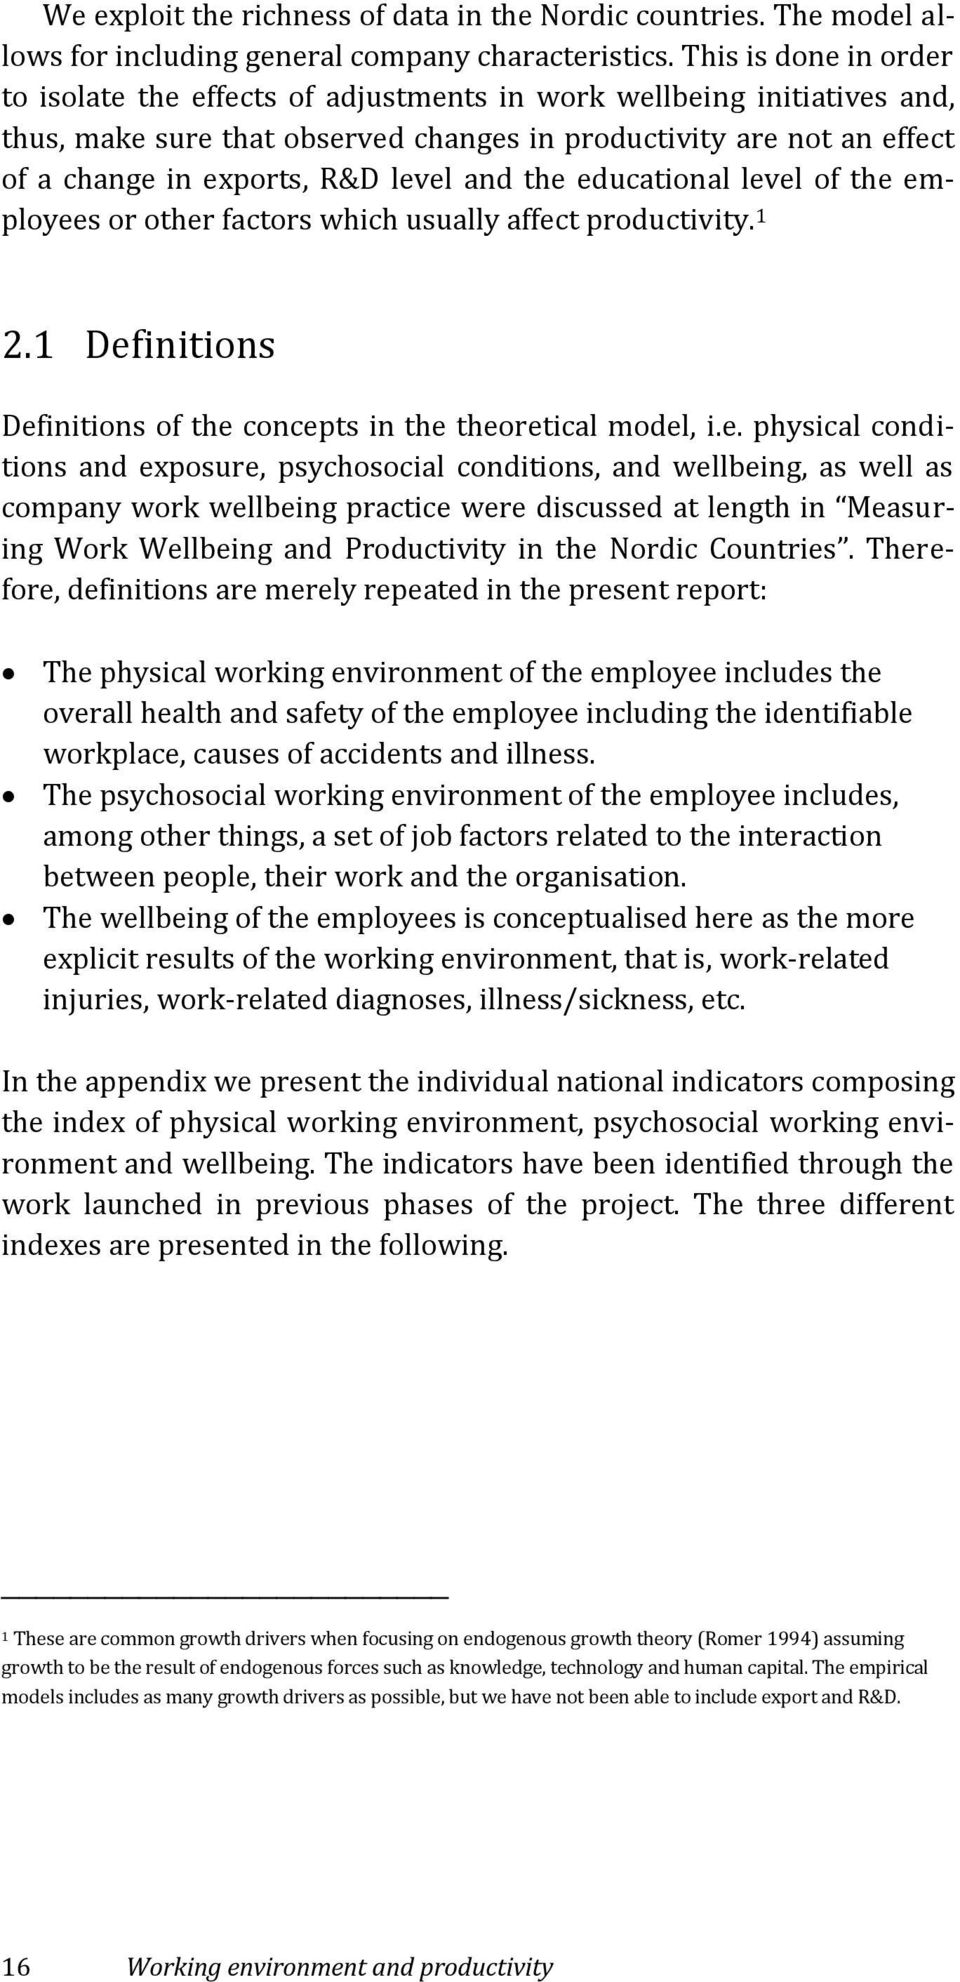 level and the educational level of the employees or other factors which usually affect productivity. 1 2.1 Definitions Definitions of the concepts in the theoretical model, i.e. physical conditions